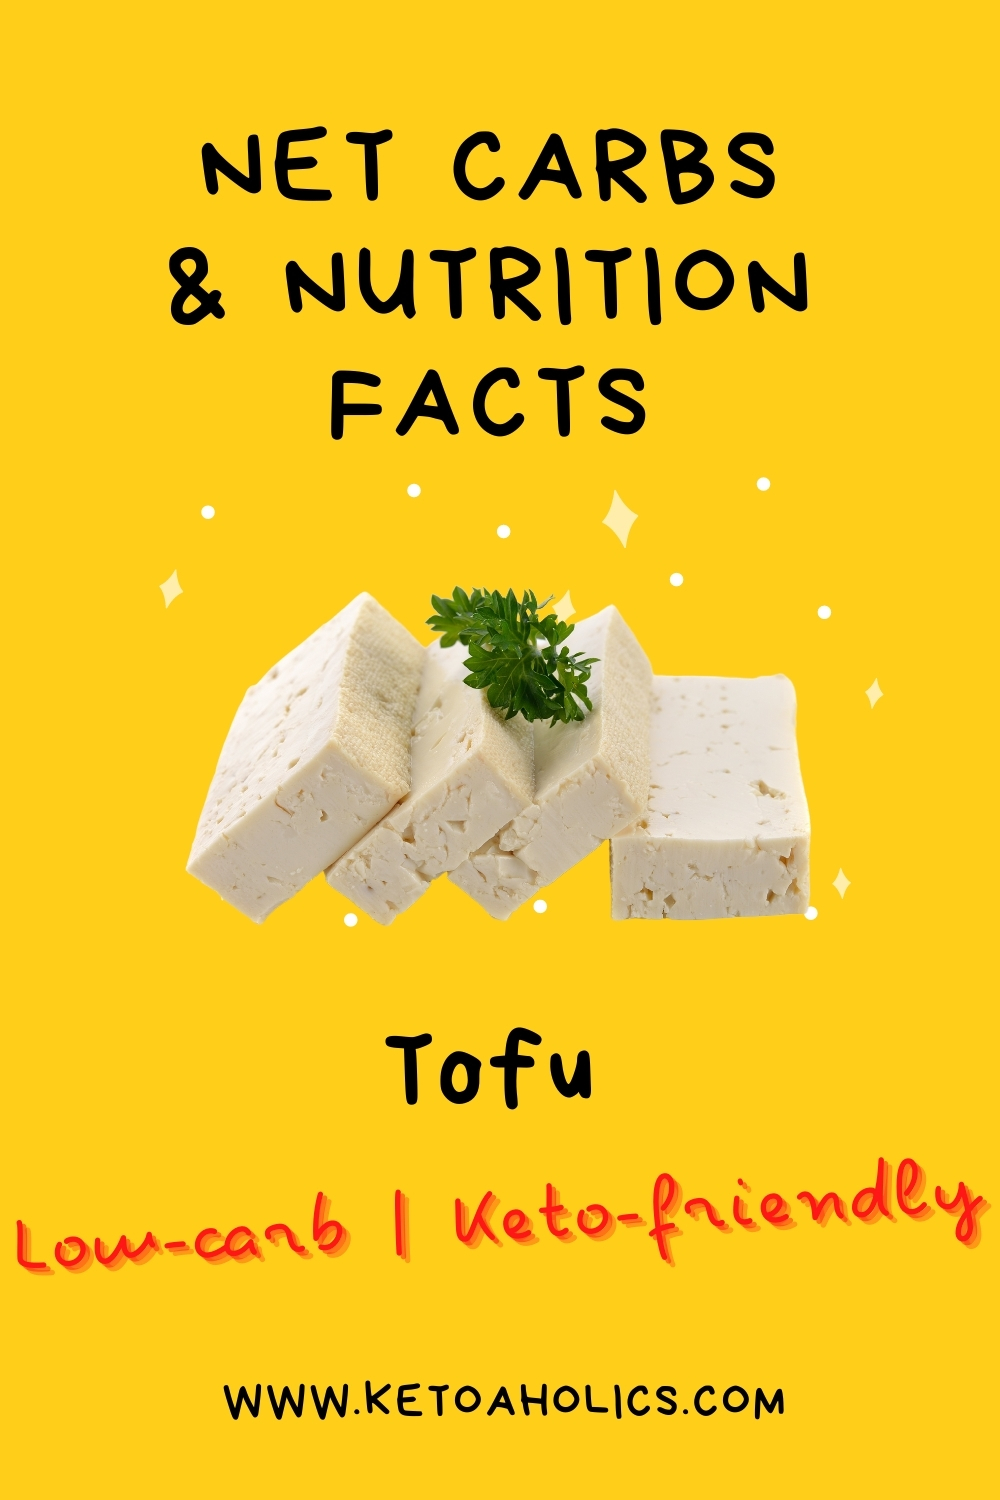 image of net carbs in tofu is tofu low carb, ketogenic friendly